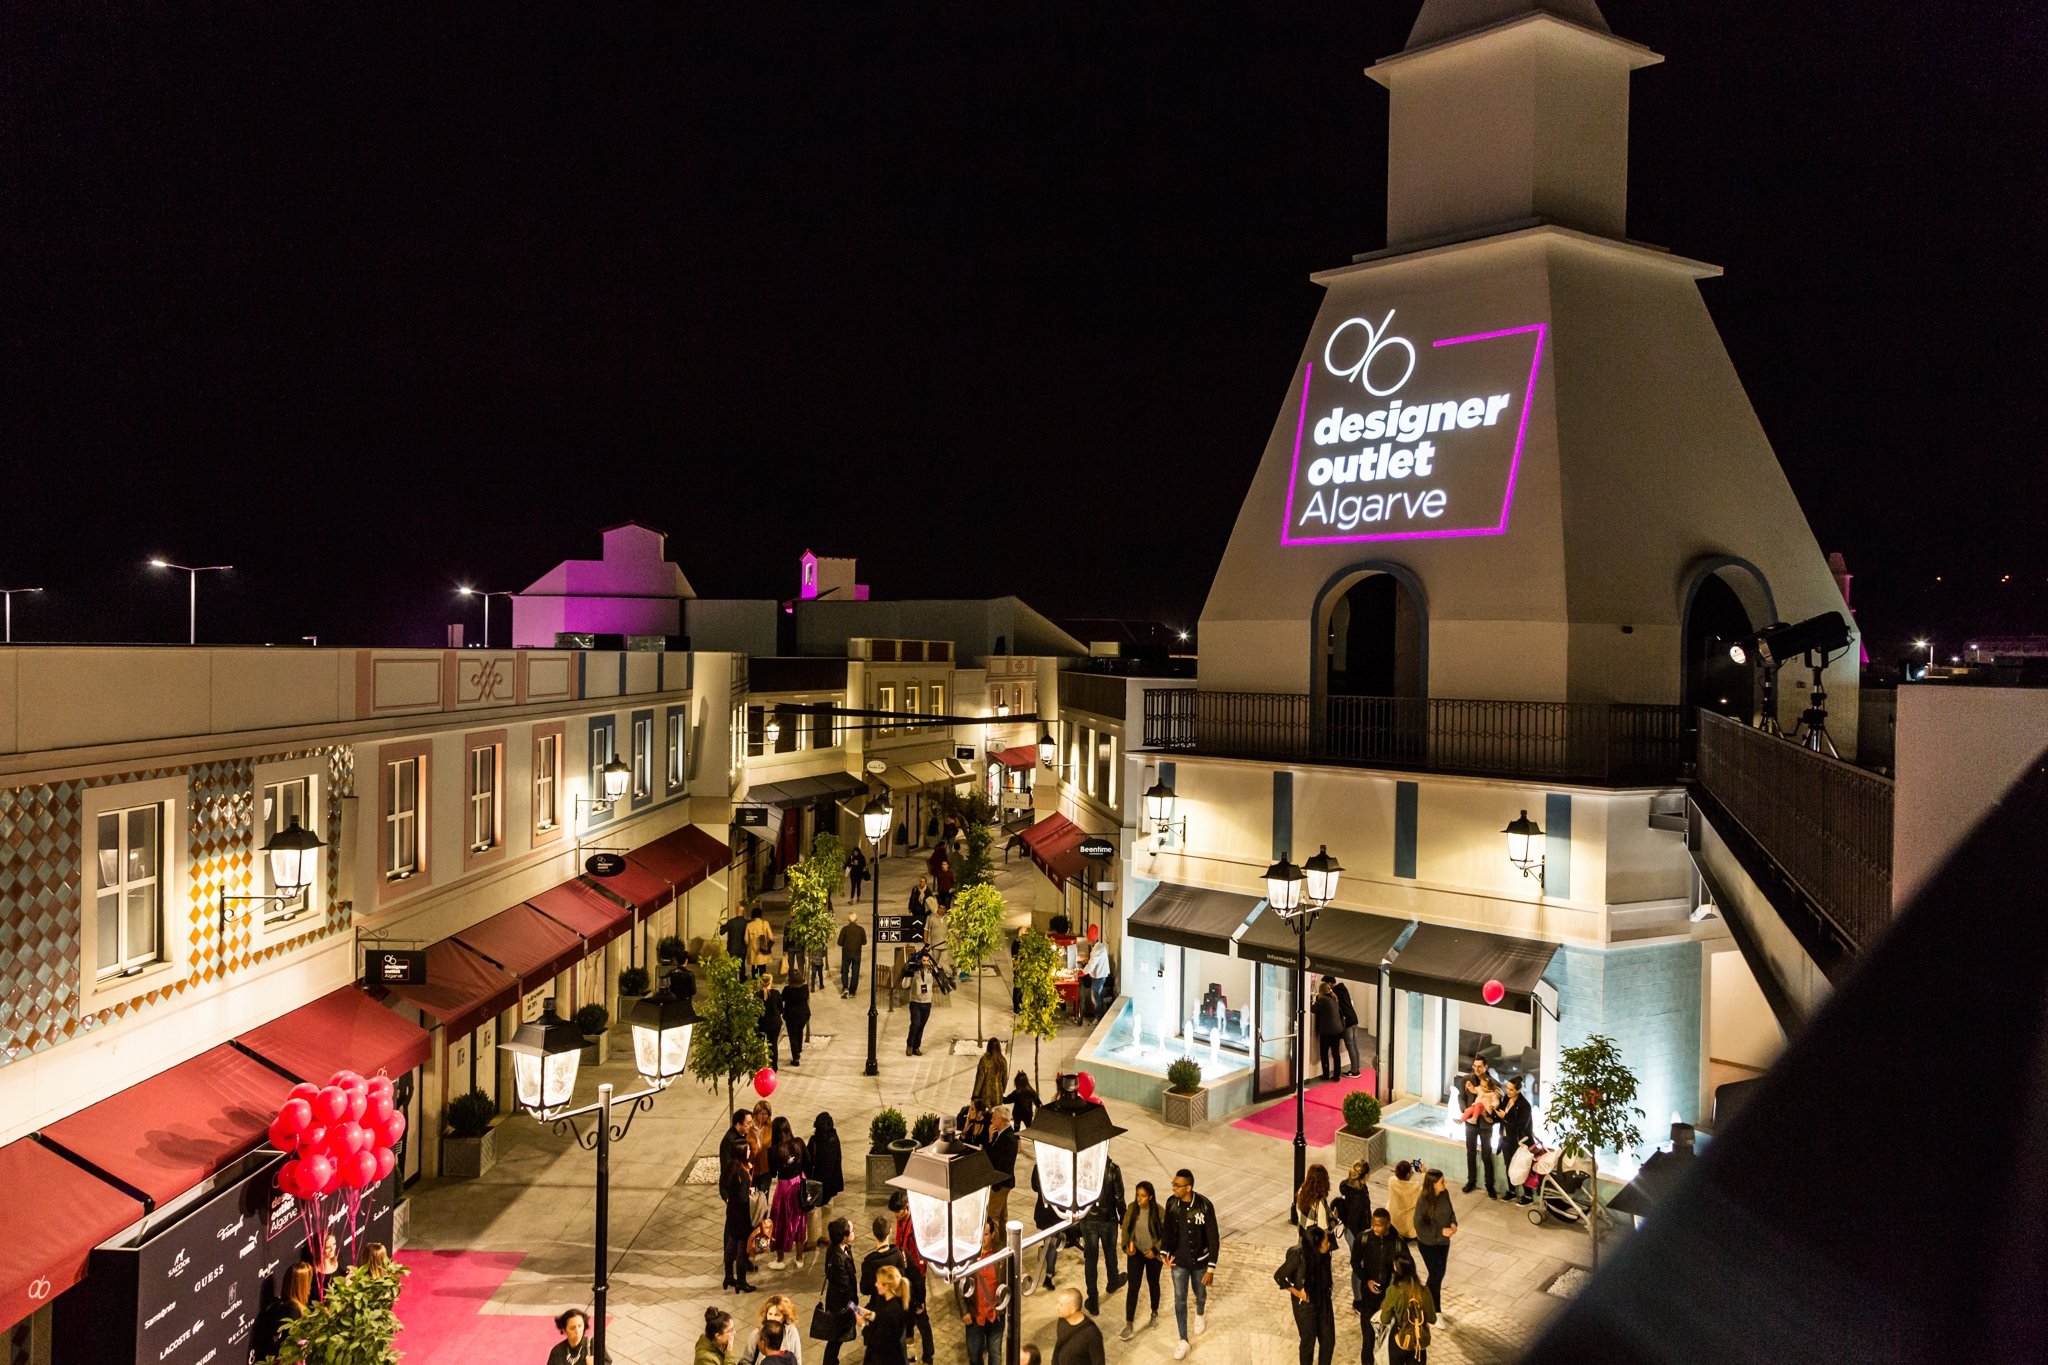 designer-outlet-algarve-47